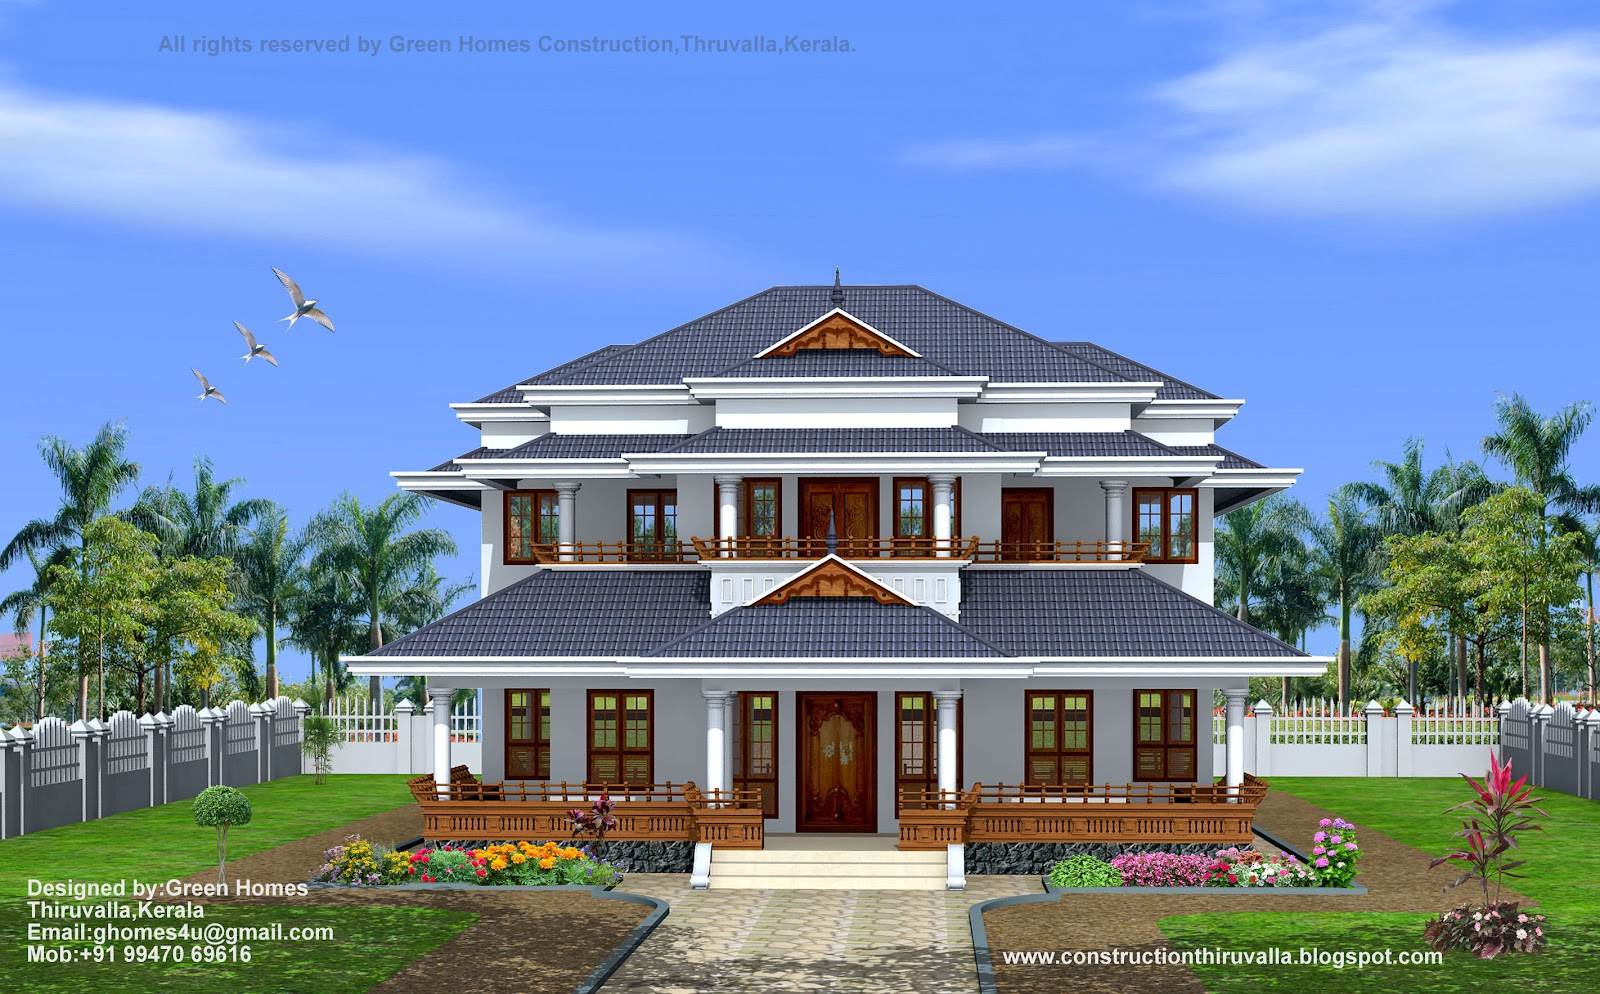 Green homes traditional style kerala home design 3450 sq feet for Kerala house construction plans